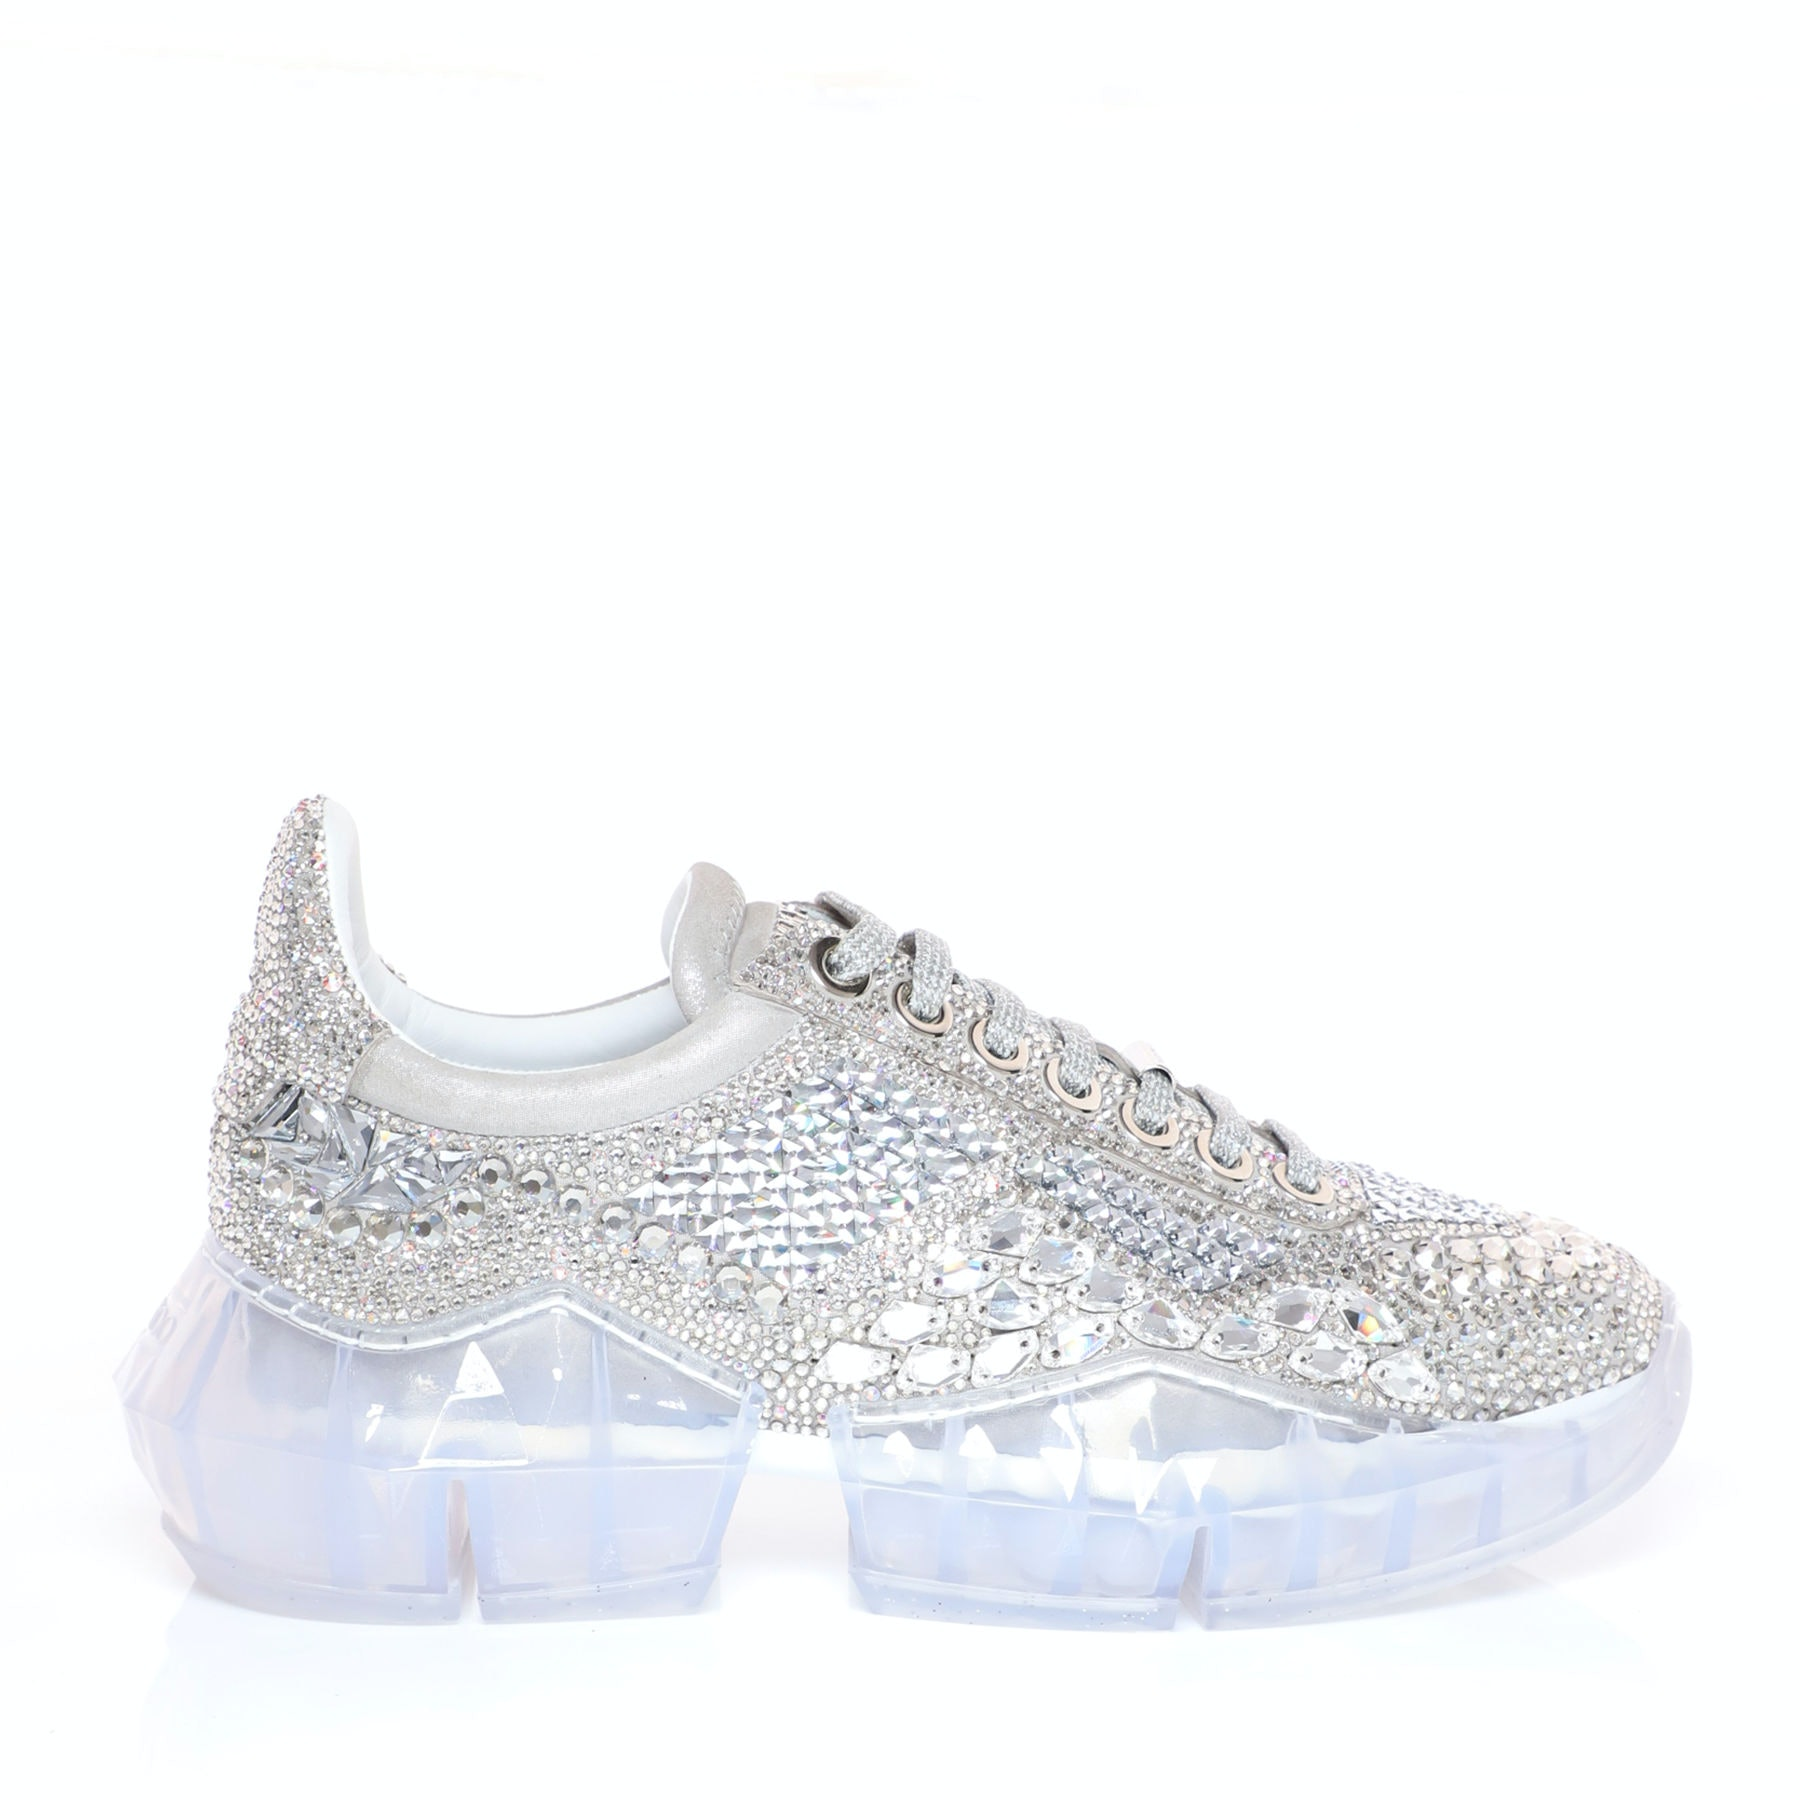 Jimmy Choo's Diamond Sneakers Are The